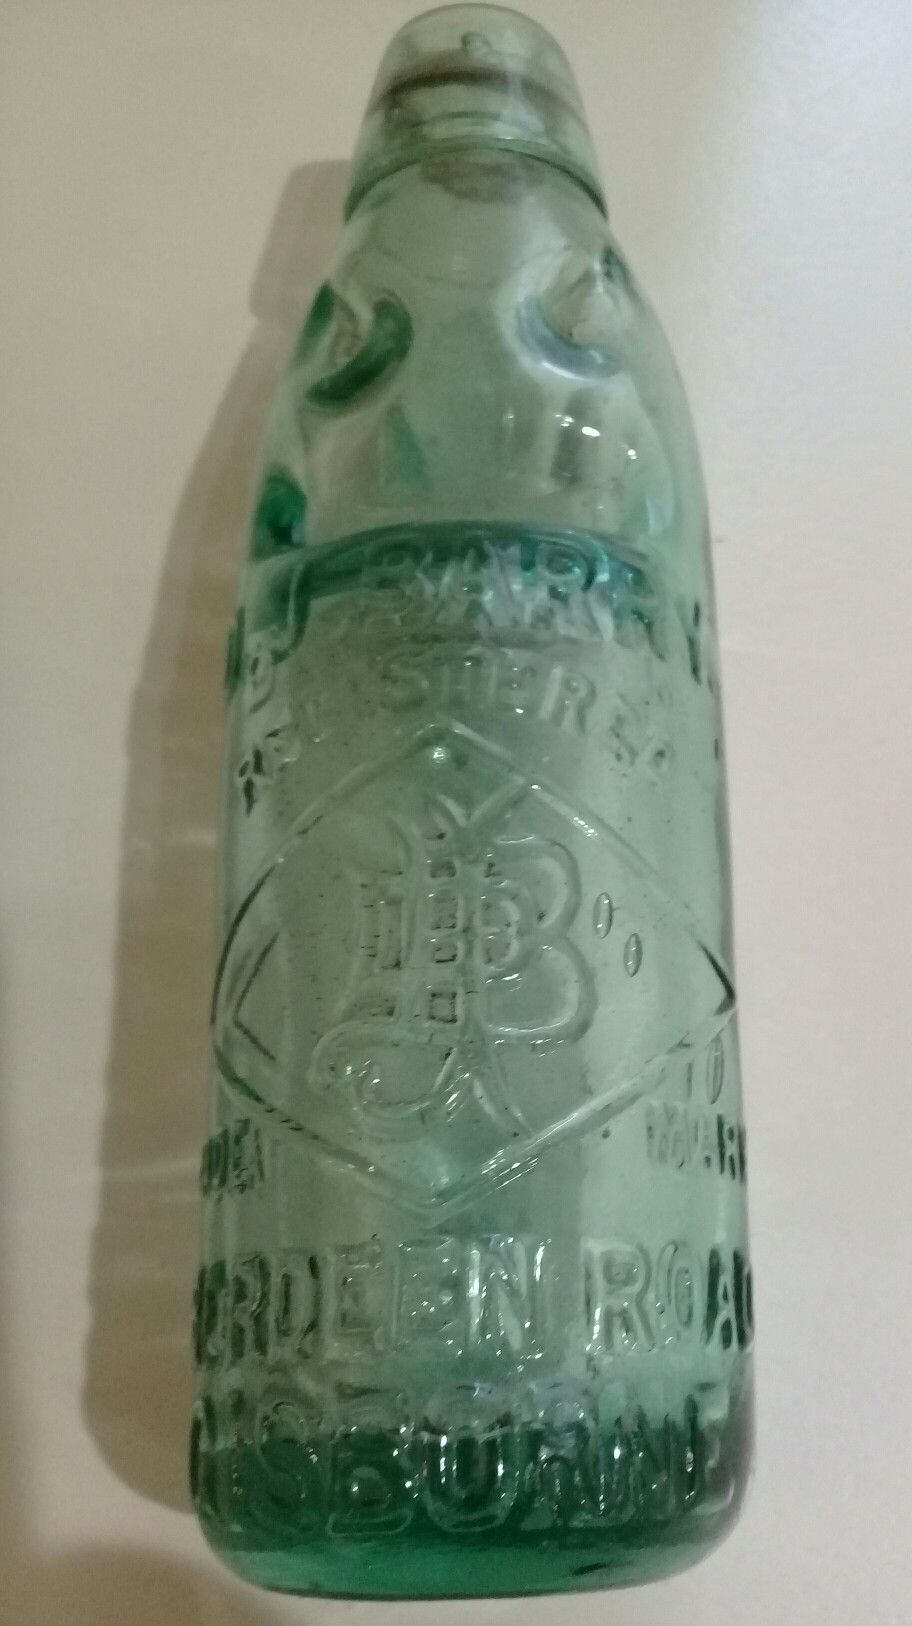 D J Barry Gisborne Drink Bottle With Glass Marble In Neck For Reseal Early 20th Century Era Mason Jar Lamp Glass Marbles Novelty Lamp